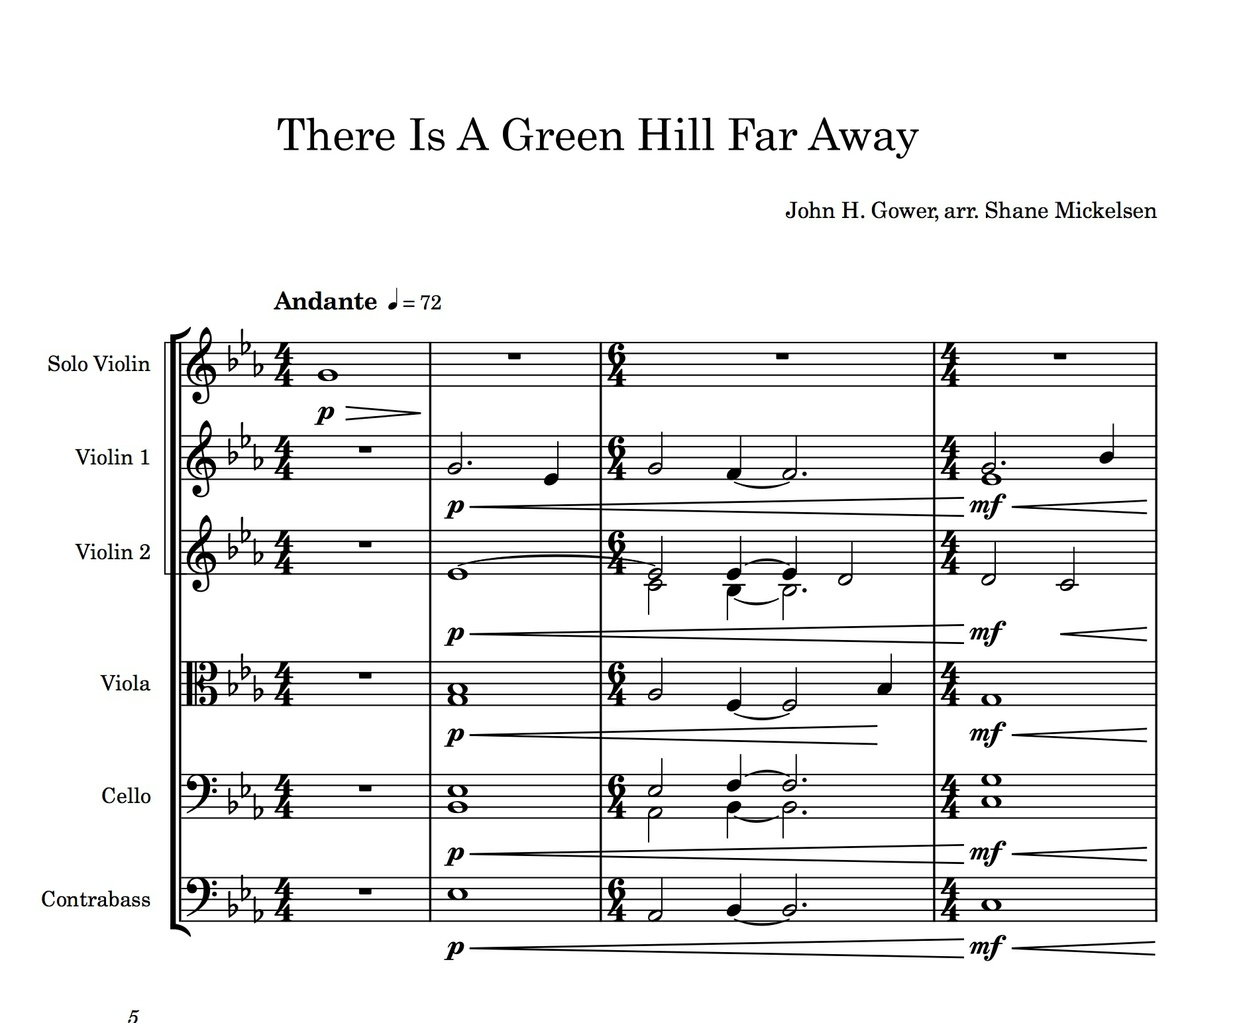 There Is A Green Hill Far Away - String Orchestra Score and Parts